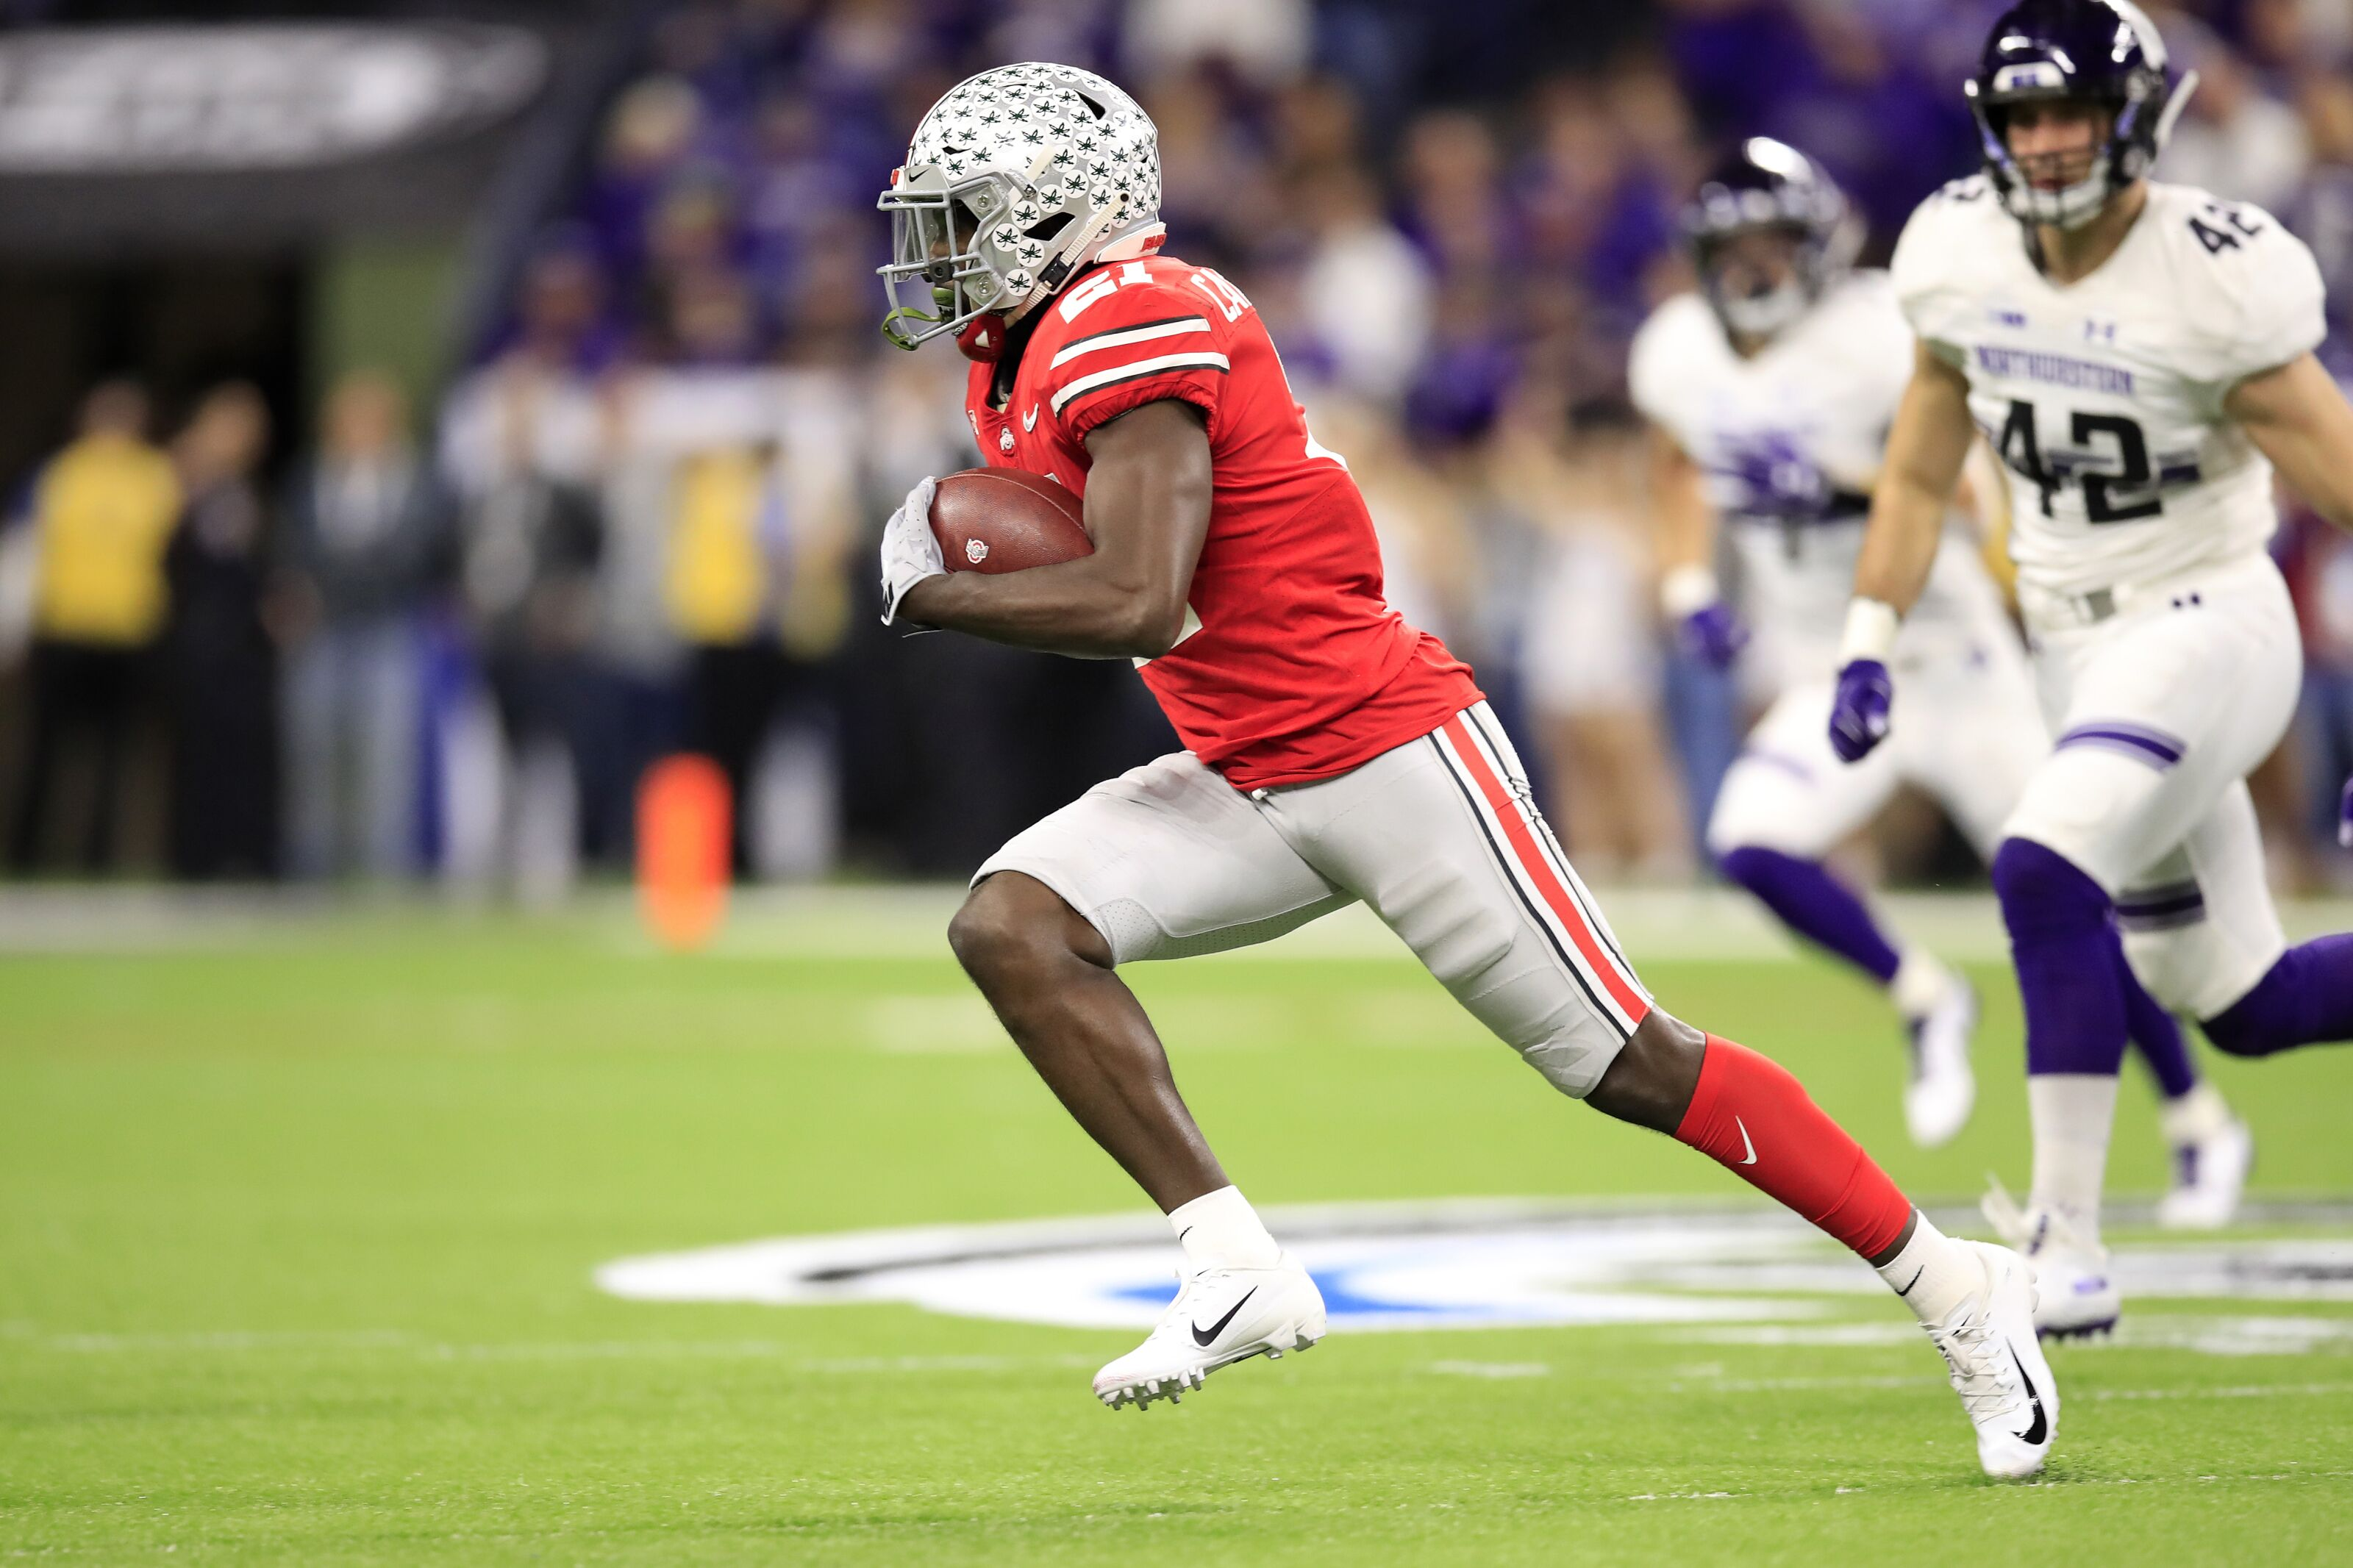 Ohio State Football: Buckeyes who are about to make fast money